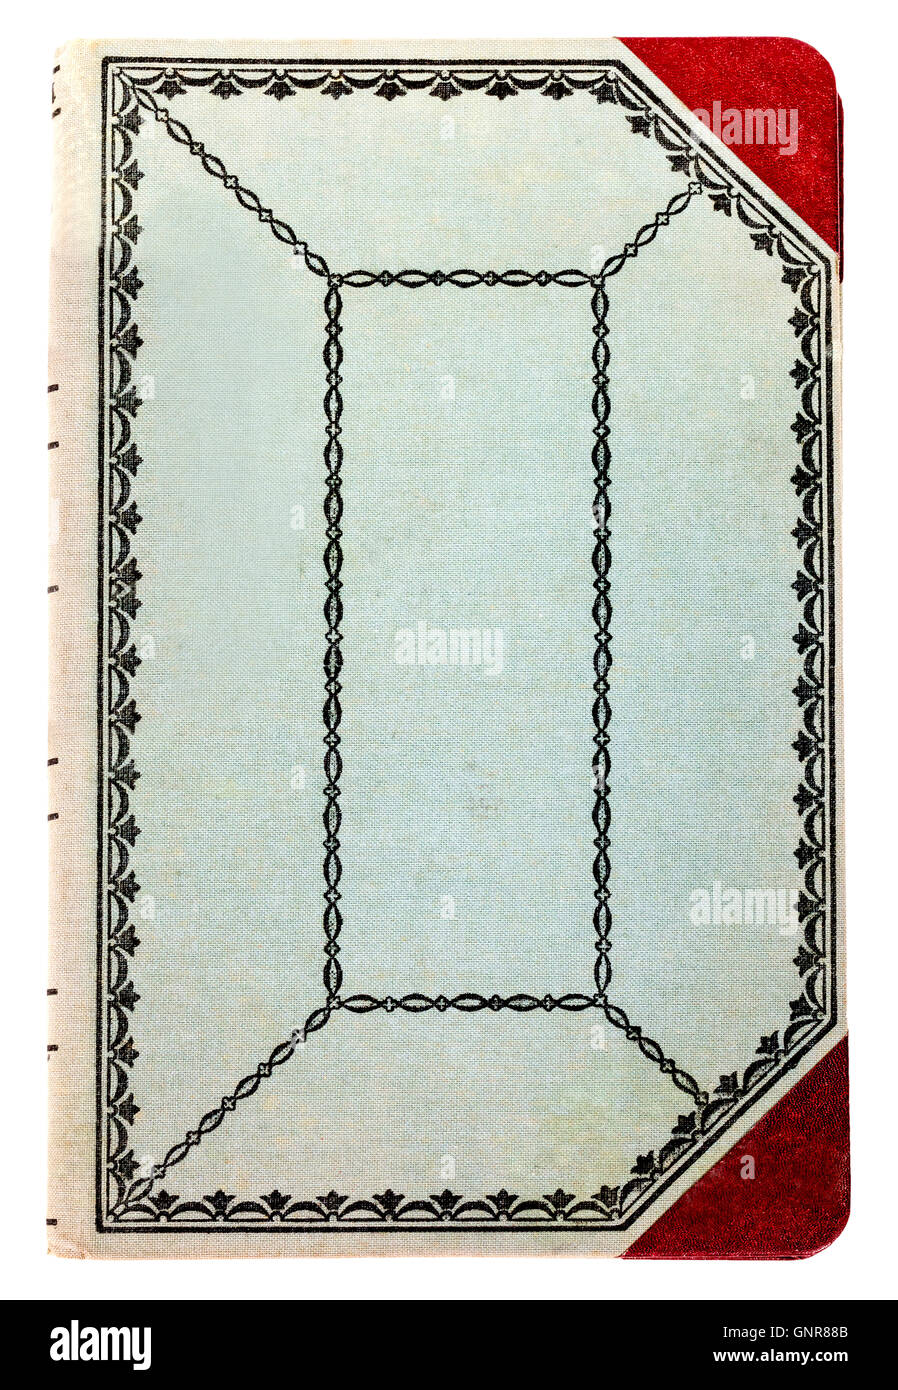 Old Accounting Journal - Stock Image